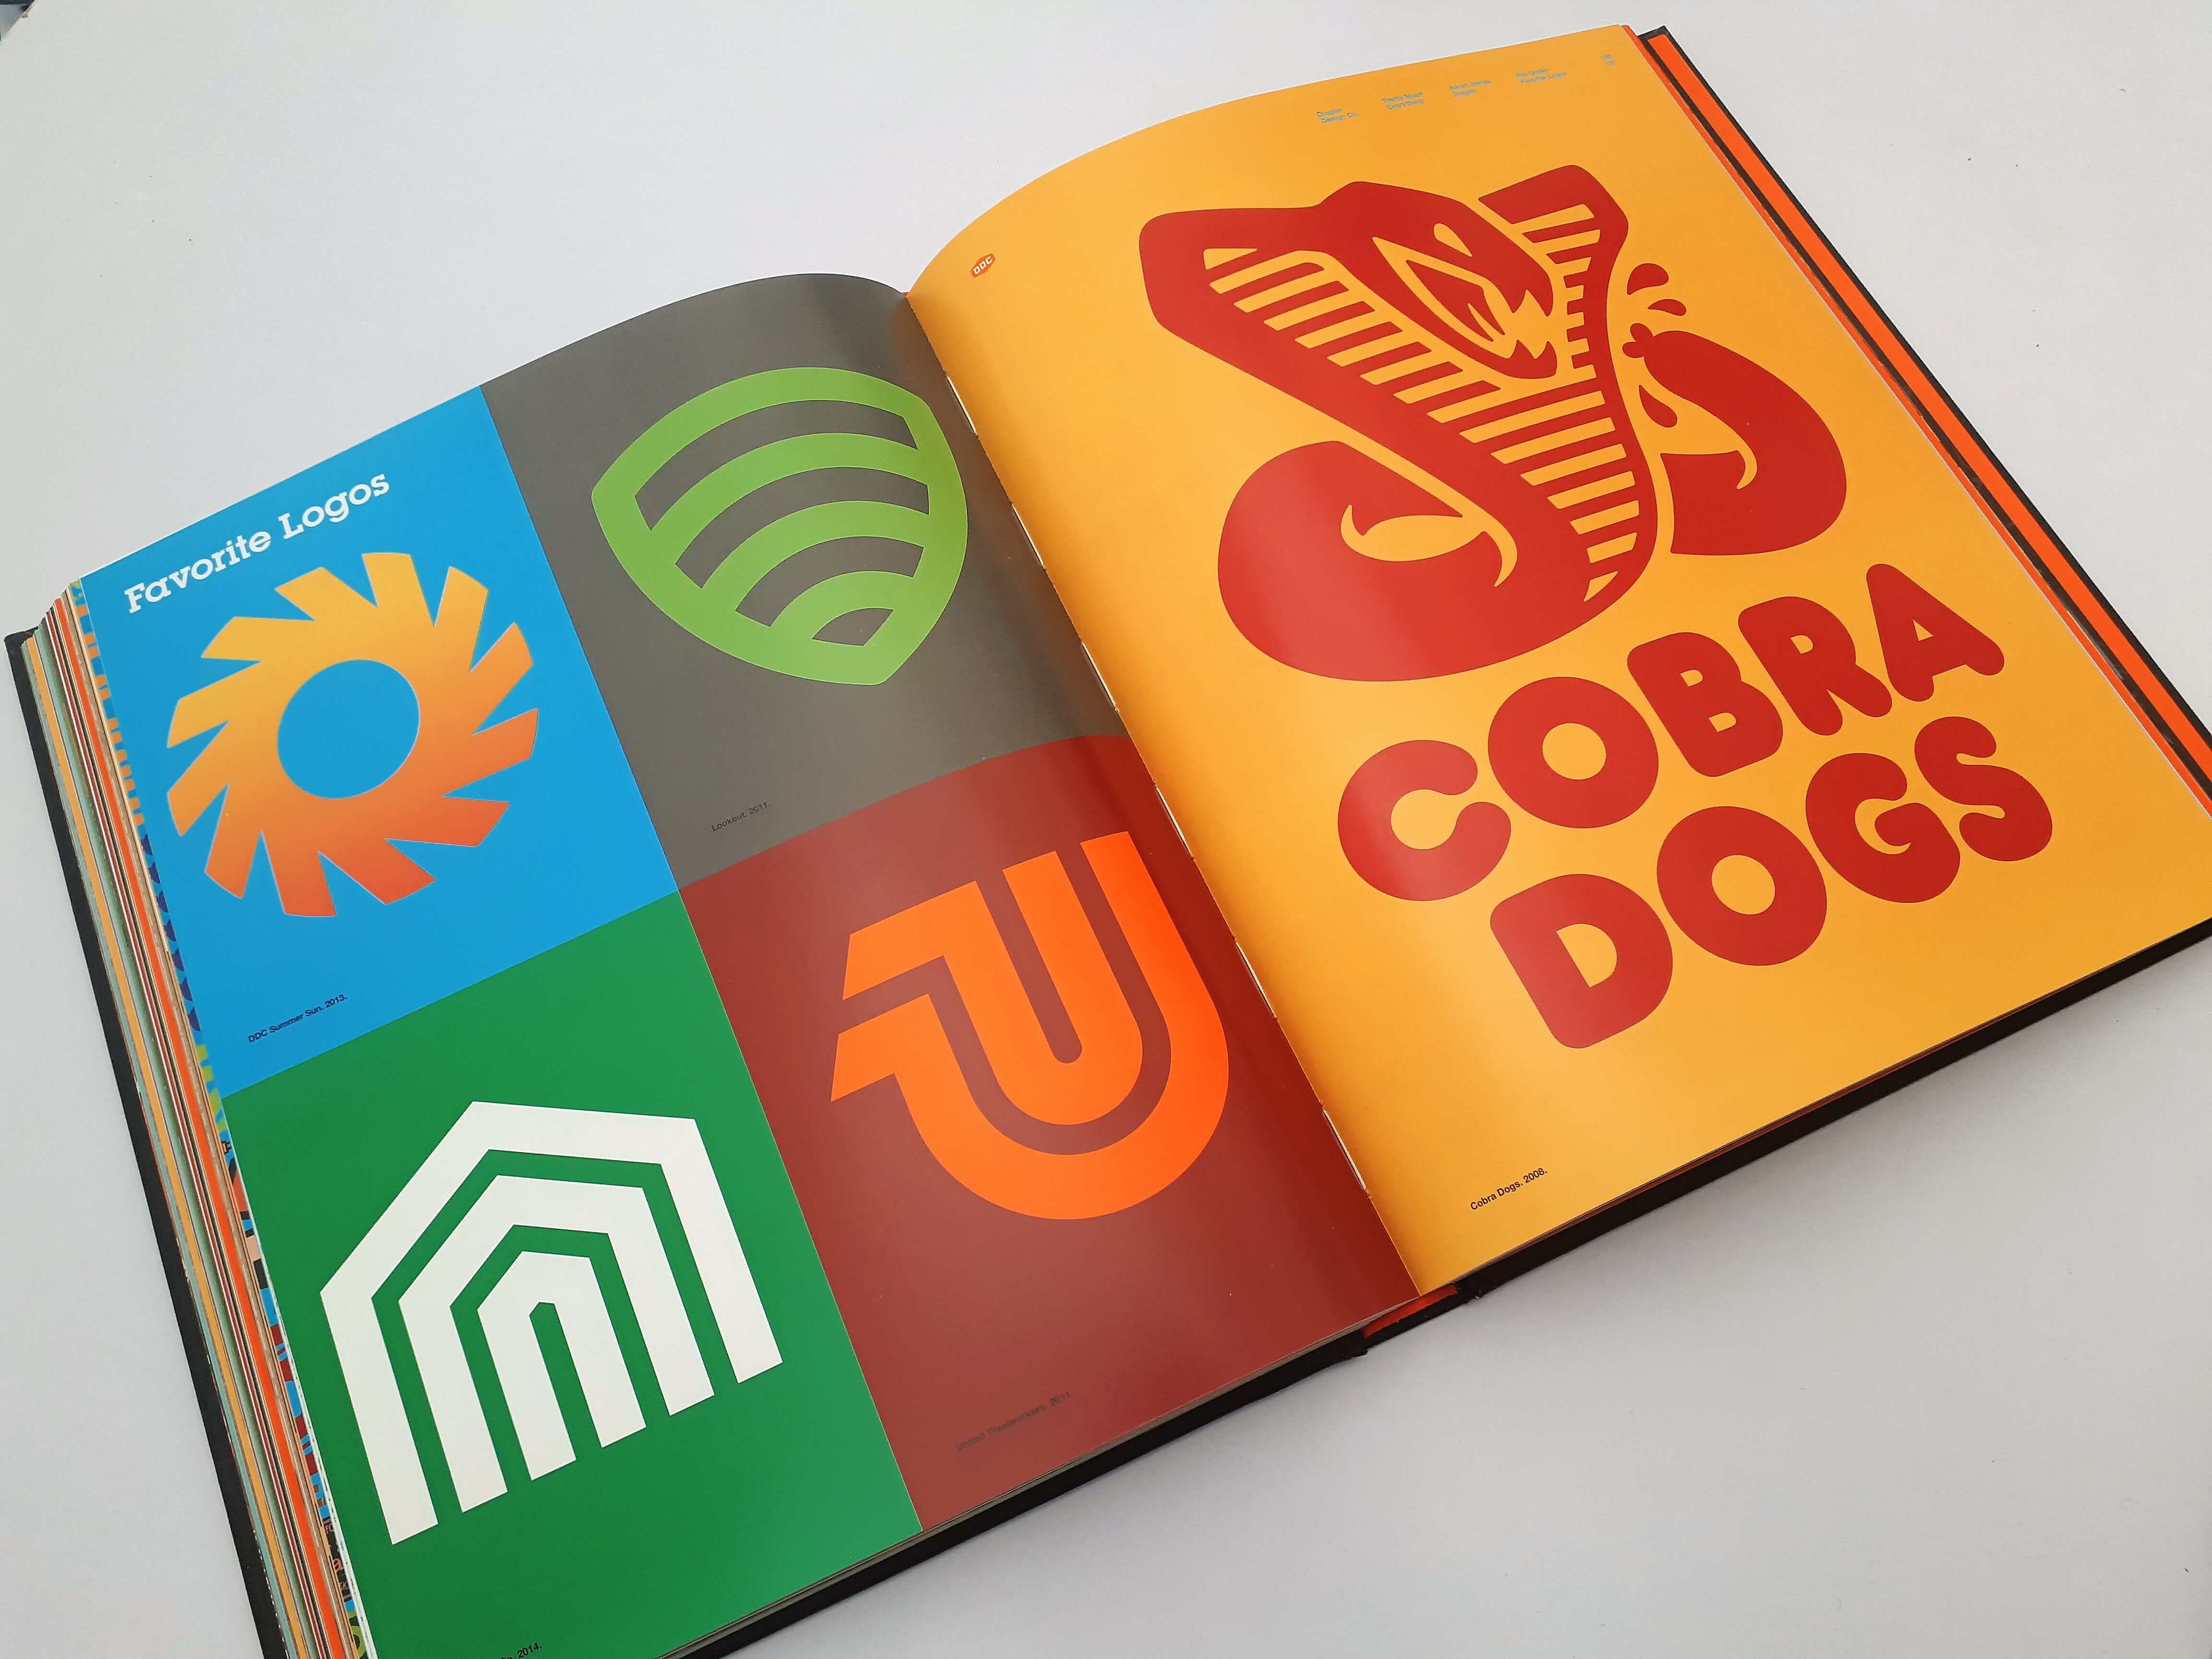 Draplin Design Co. Pretty Much Everything by Aaron James Draplin